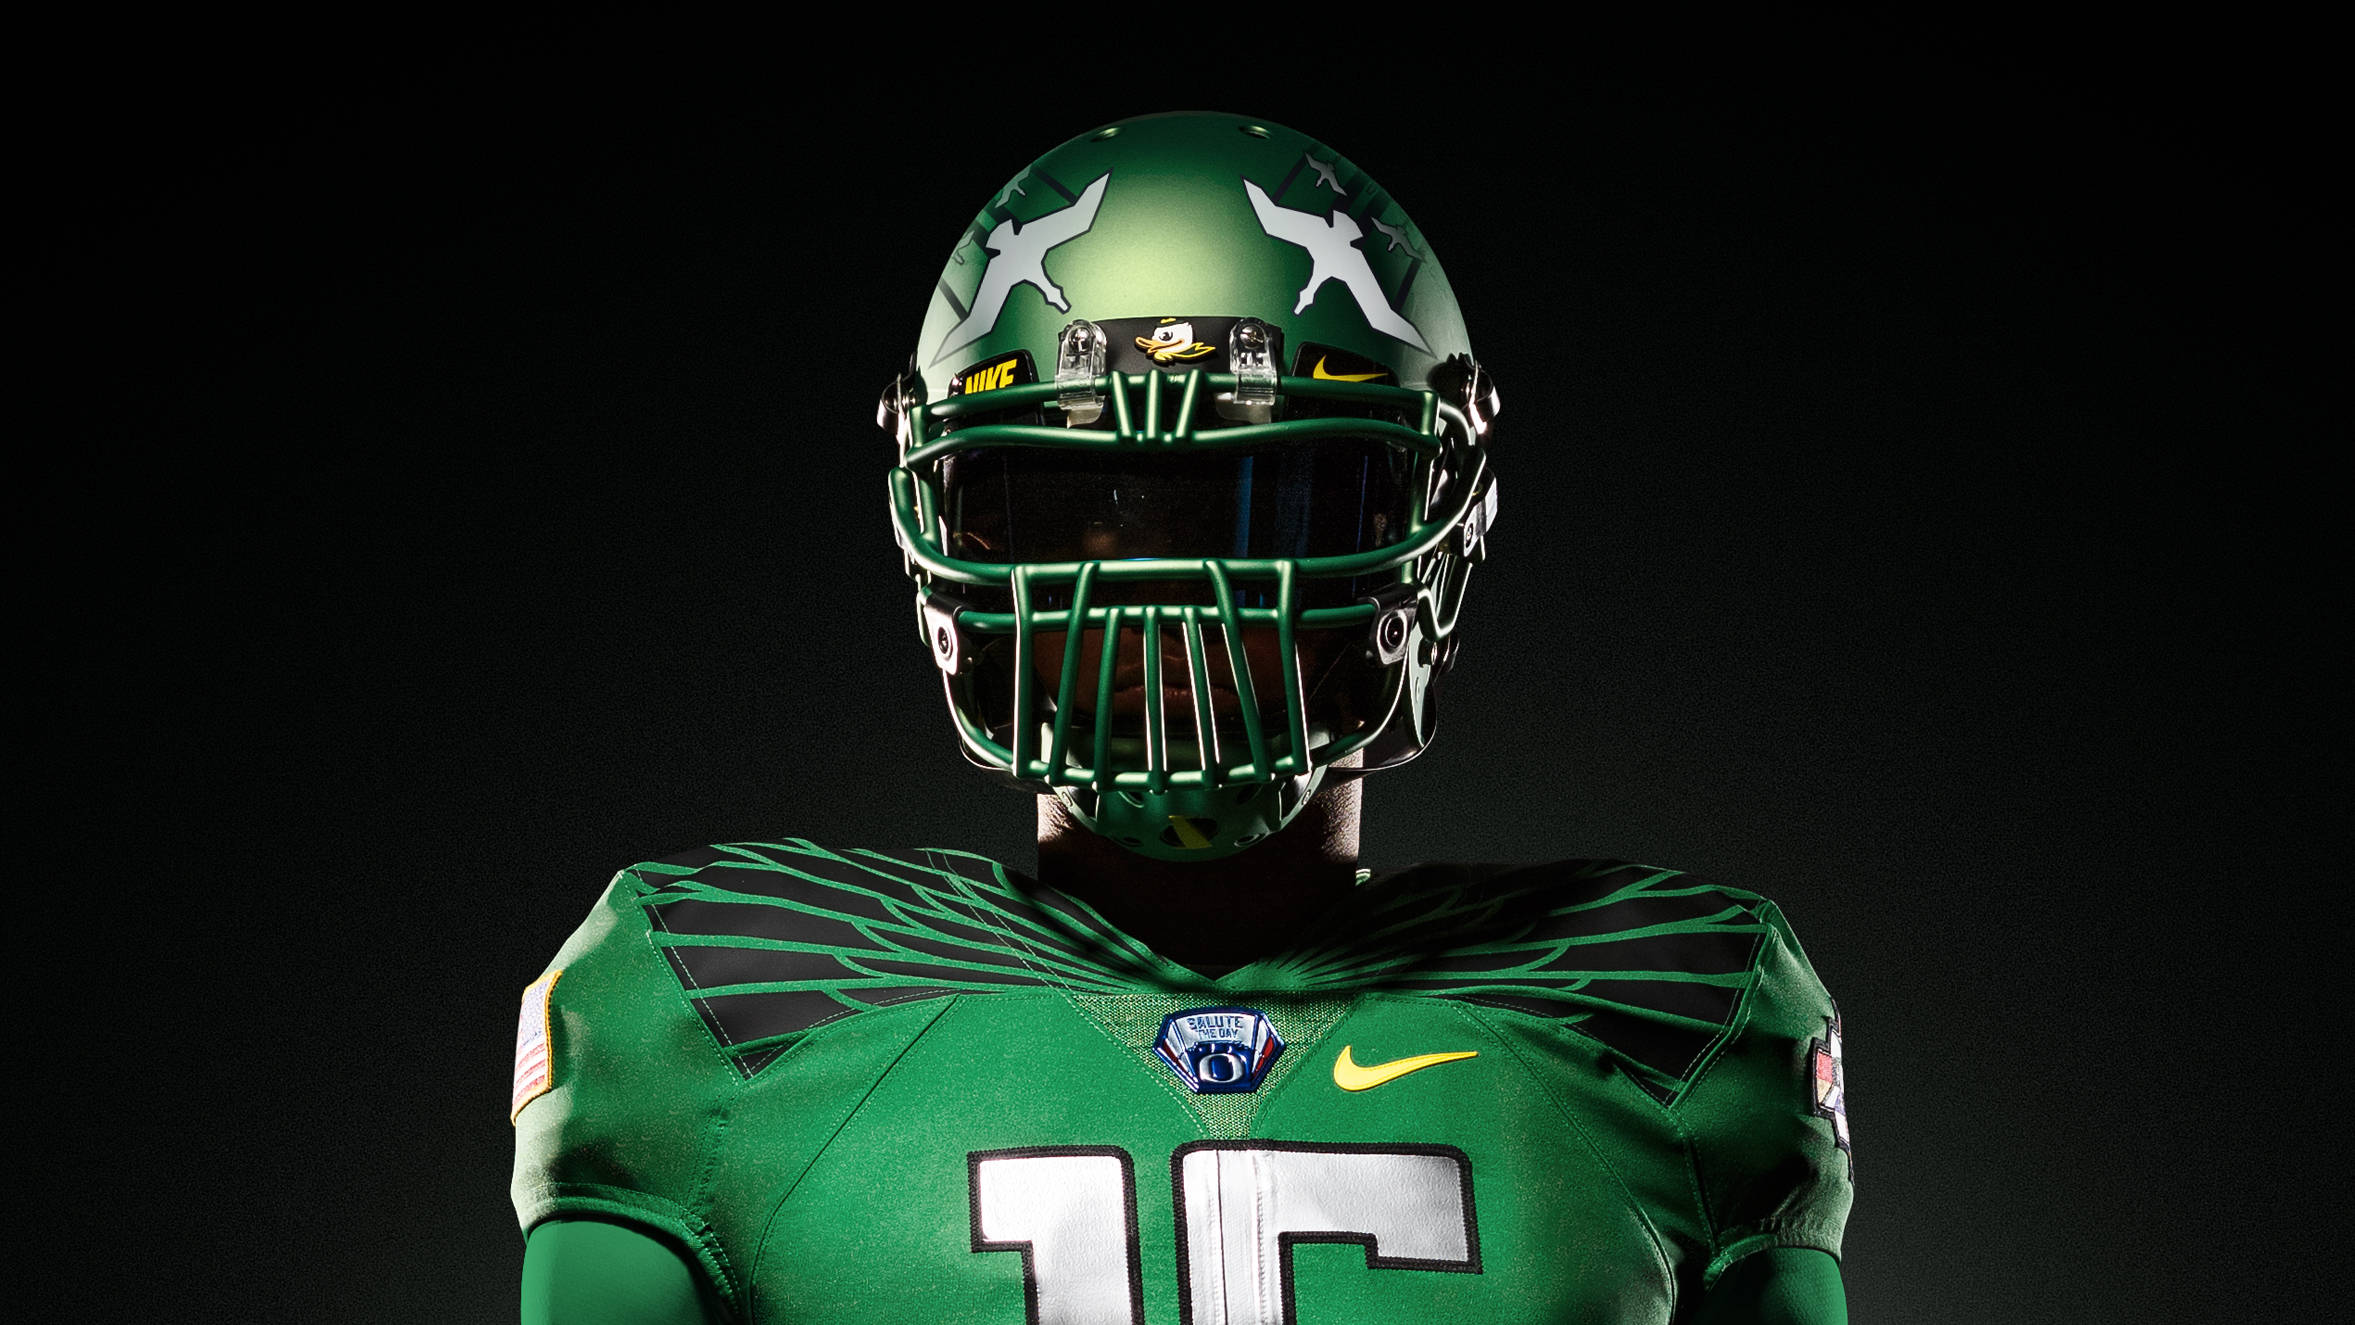 half off 68a16 73e56 Ducks, Nike continue Spring Game uniform tradition ...